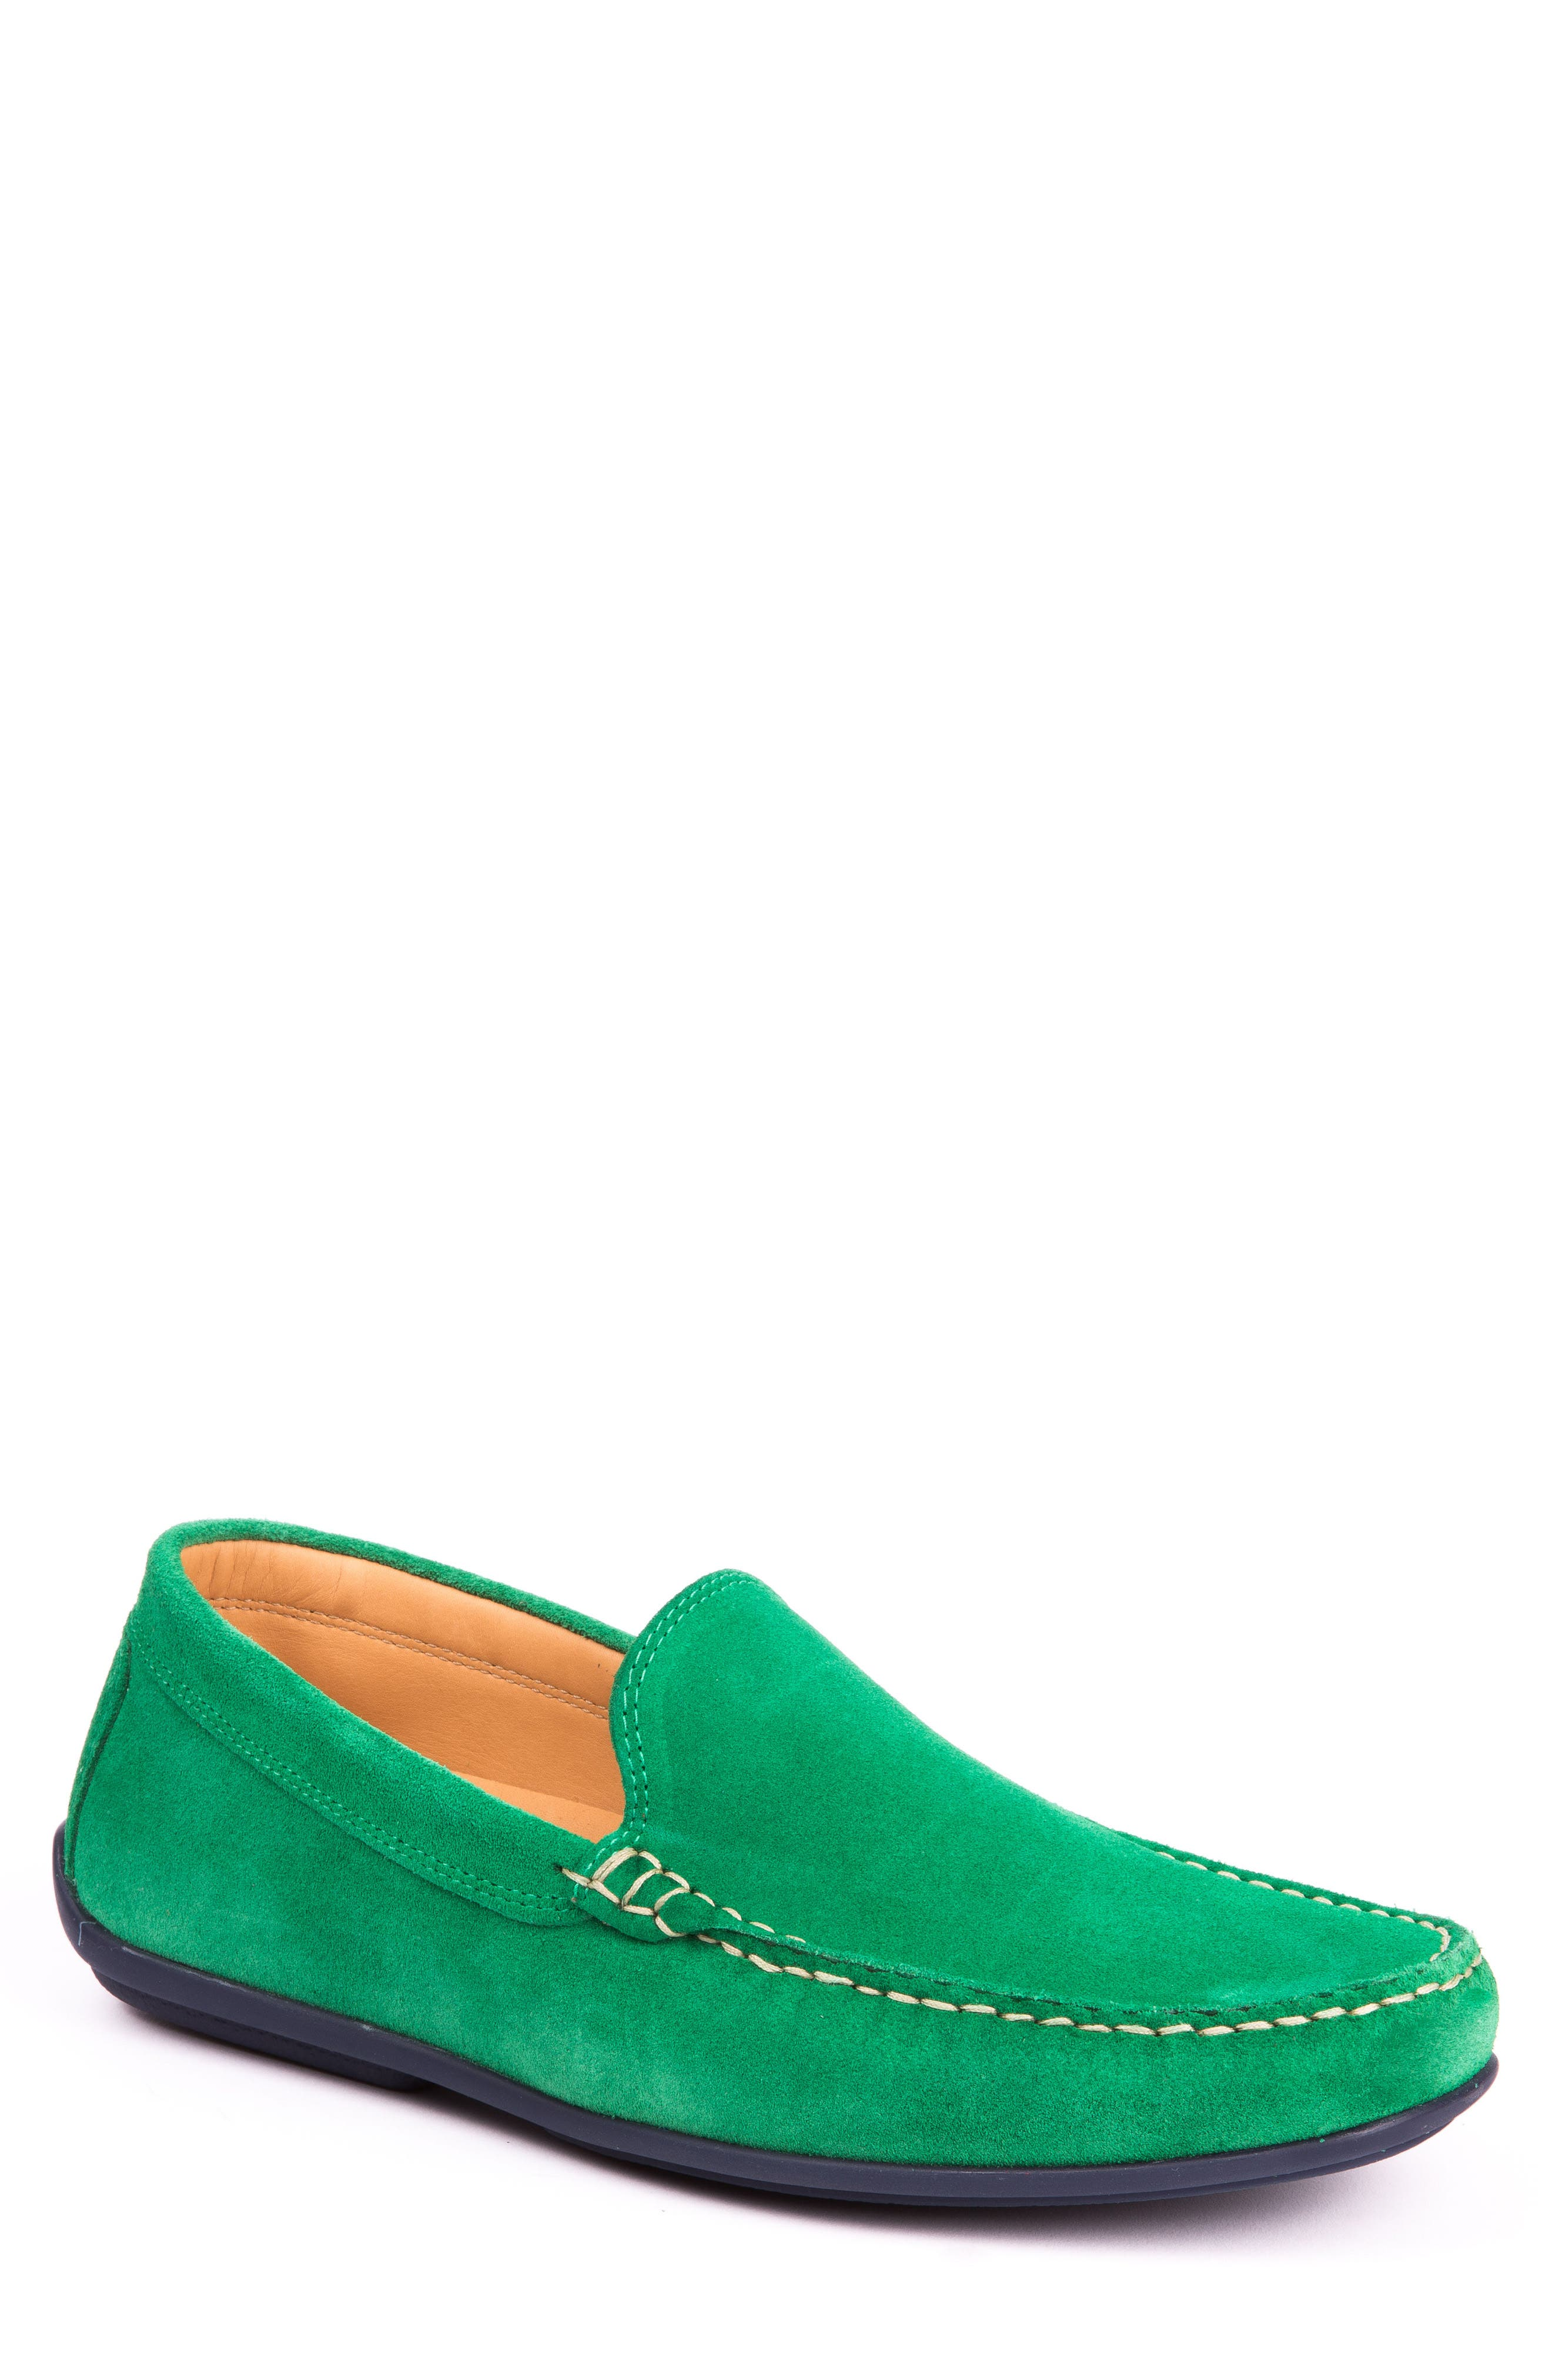 Fairways Driving Shoe,                             Main thumbnail 1, color,                             Green Suede